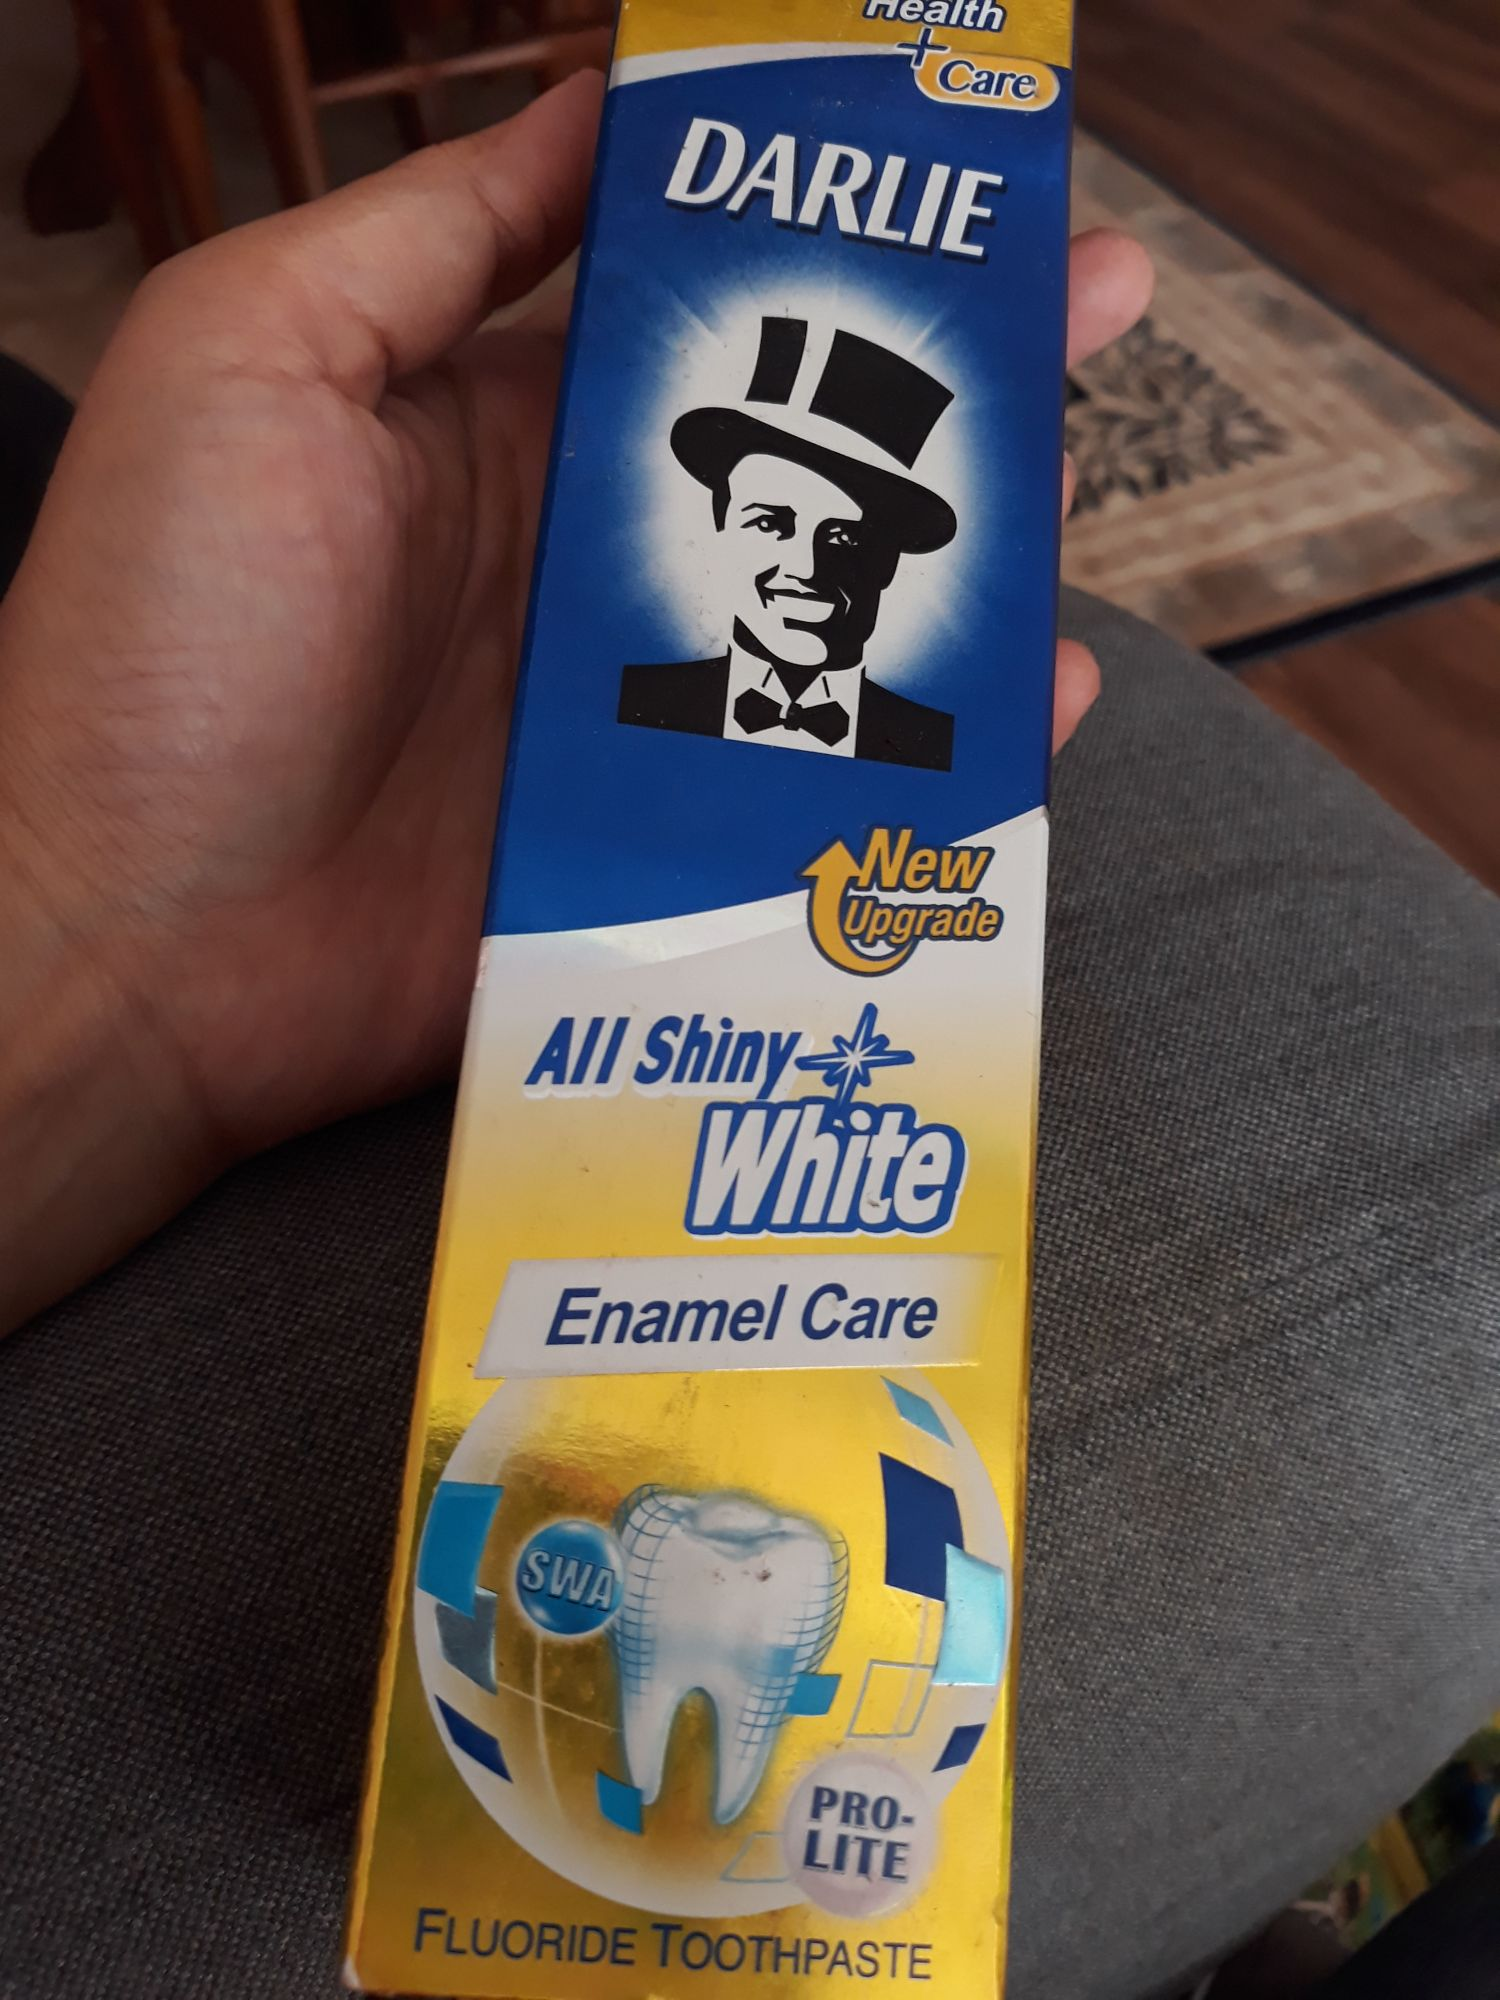 Darlie All Shiny White Enamel Care Reviews I Have Tried This Brand For About A Week Now Can See The Different In My Teeth Eventhough It Is Not That Obvious But There